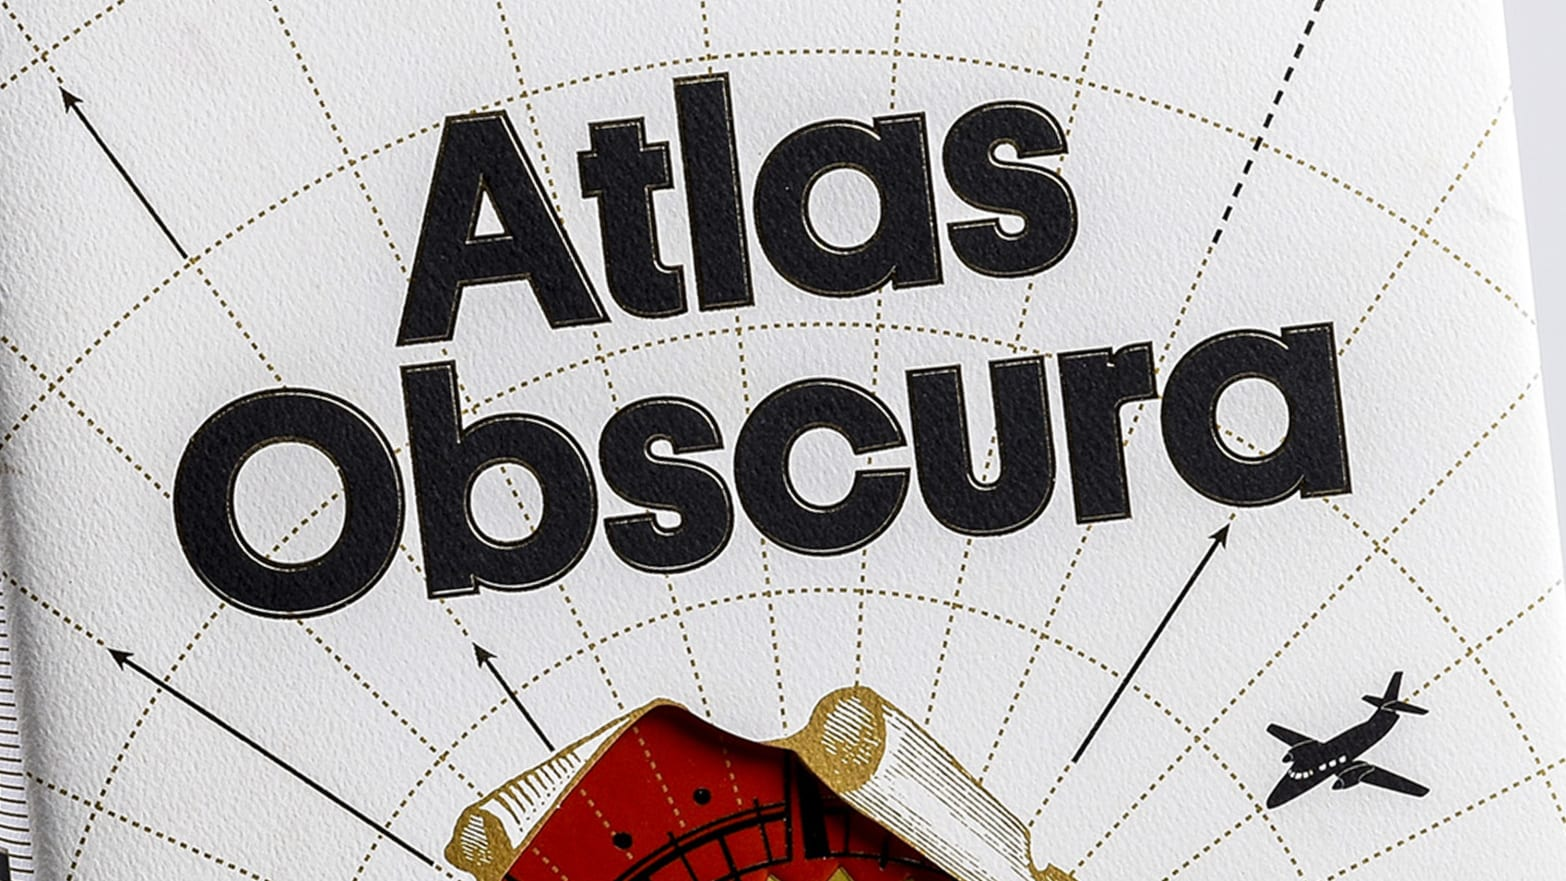 Atlas Obscura CEO David Plotz Resigns, Crowdsources for His Own Replacement